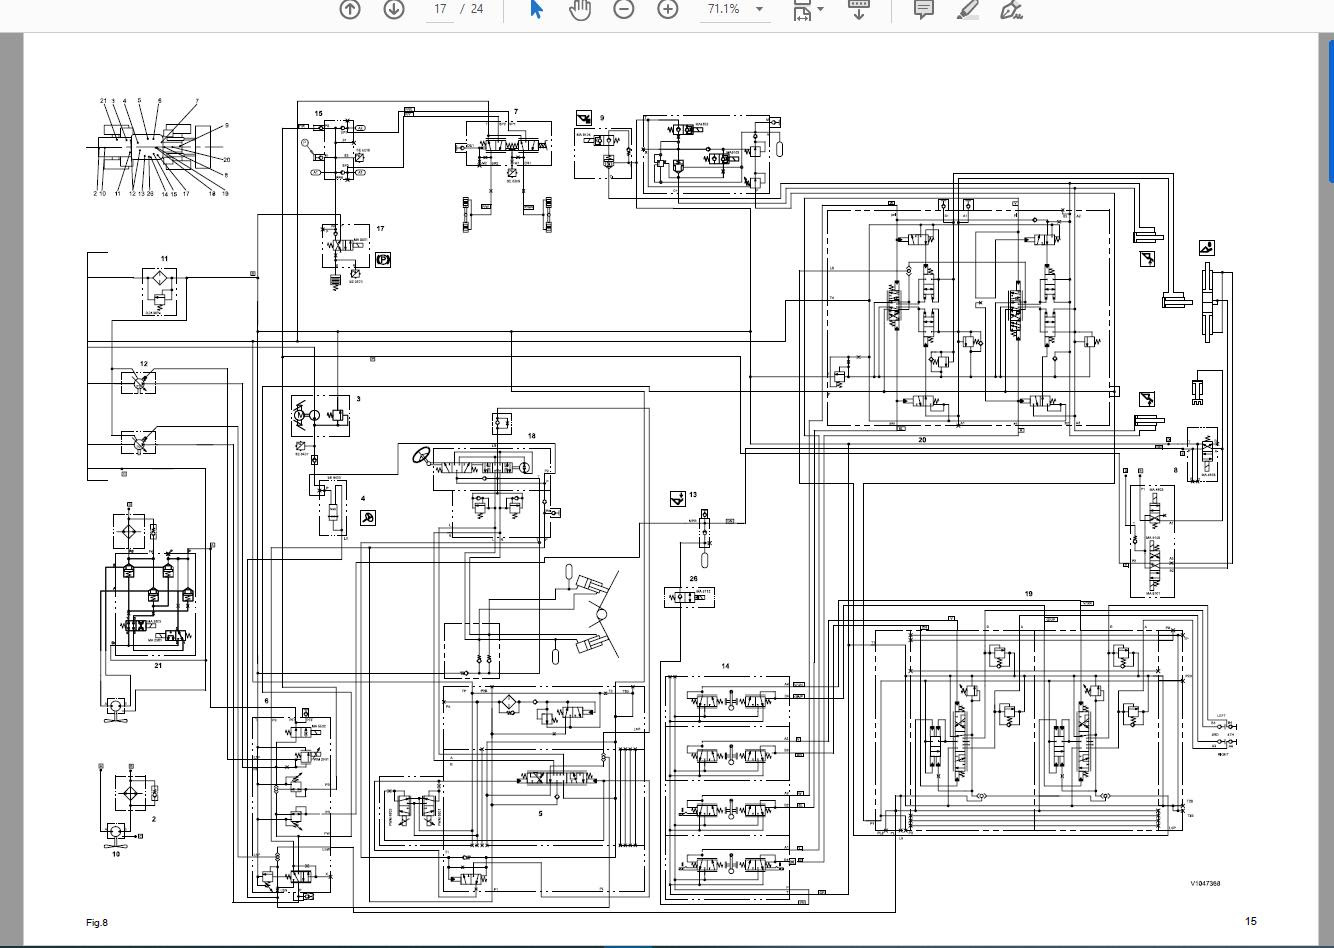 Diagram Wiring Diagram Volvo L60f Full Version Hd Quality Volvo L60f Diagrammesxy Orbicolare It